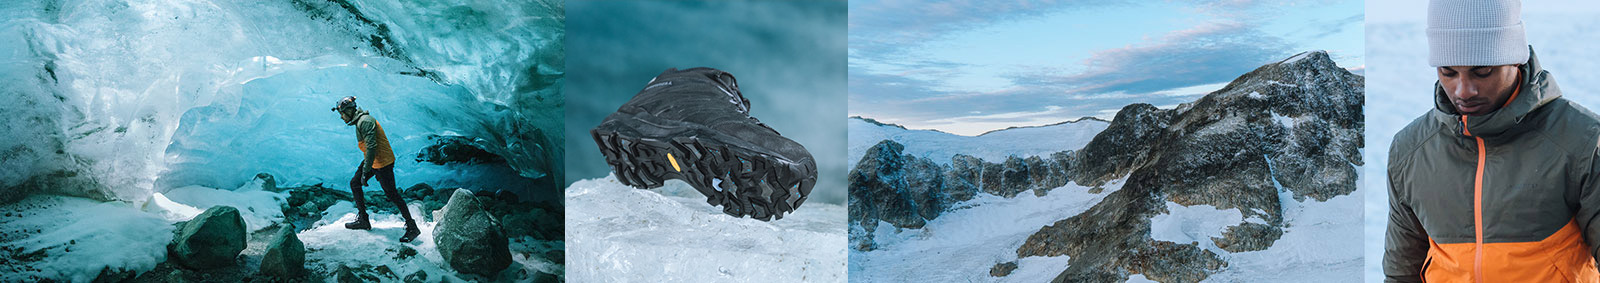 Merrell with Vibram ARCTIC GRIP - Gallery